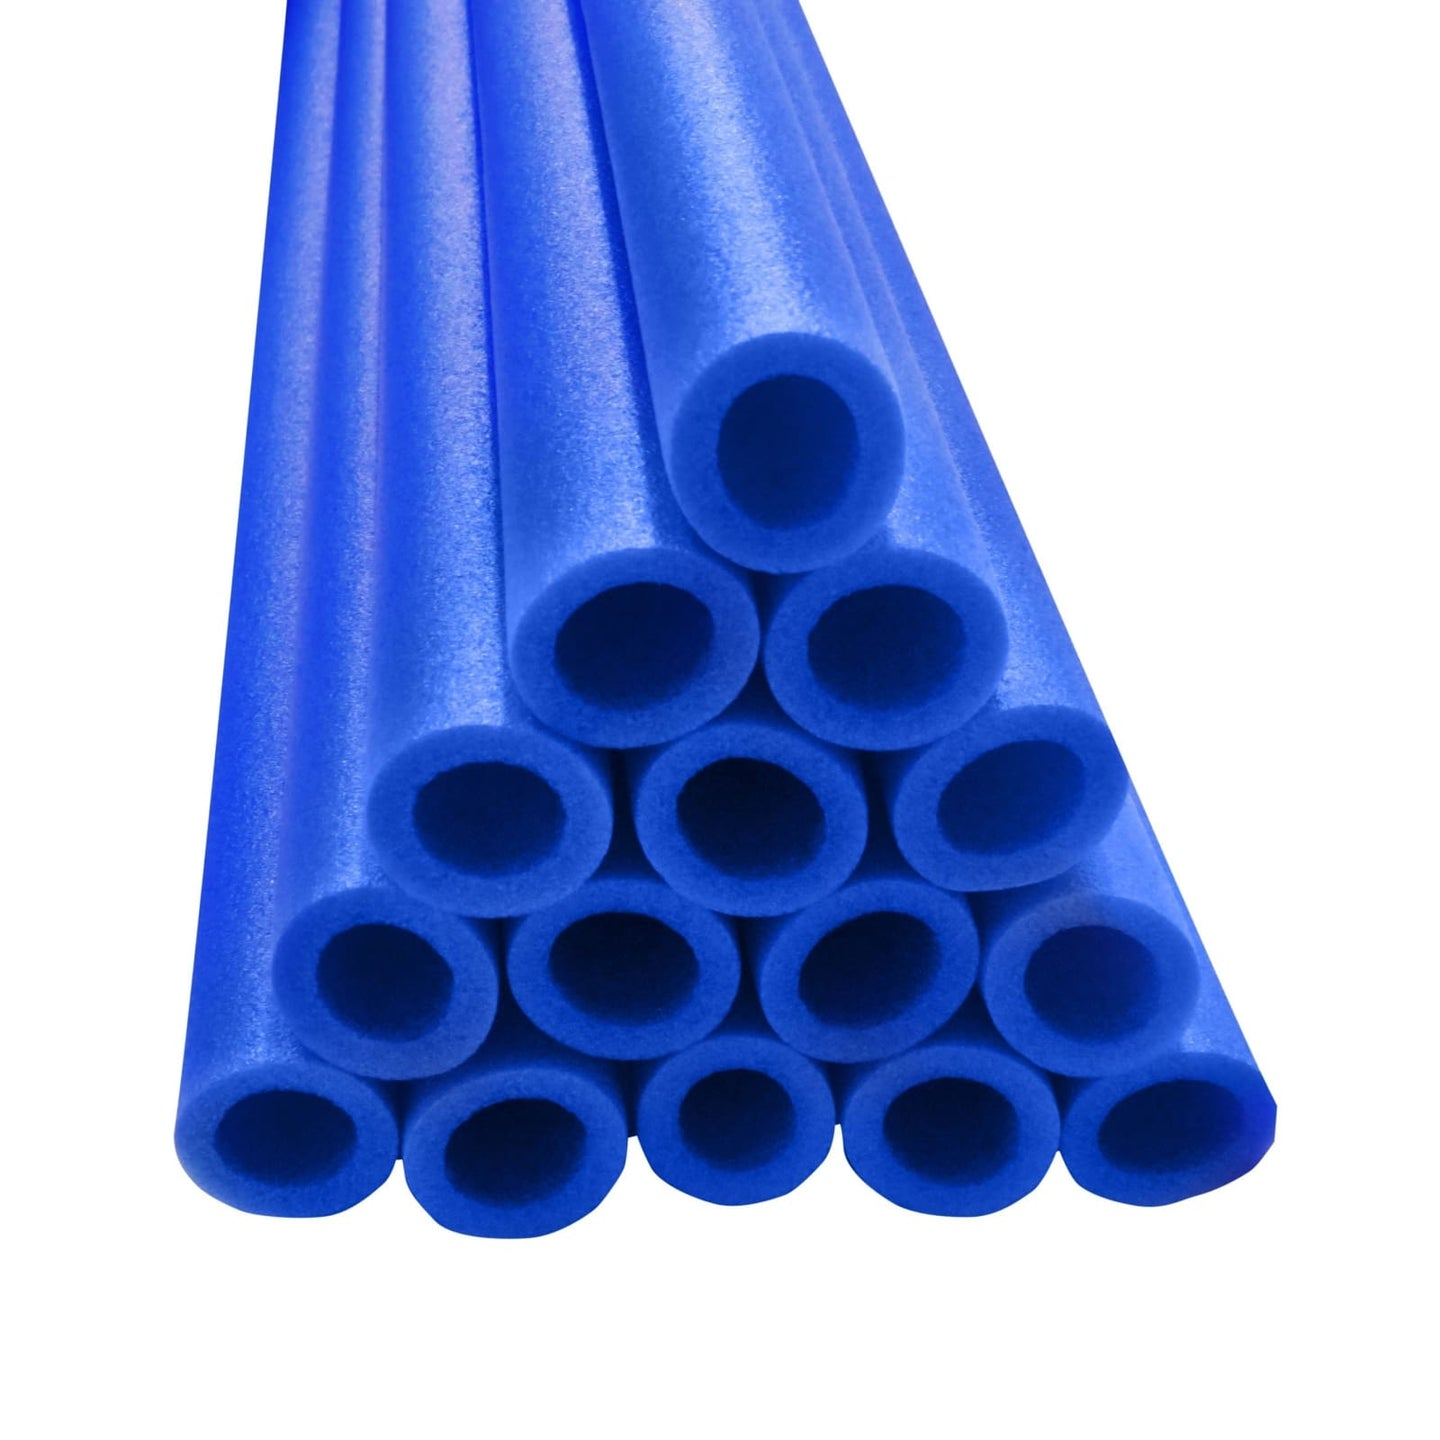 Upper Bounce 33 Inch Trampoline Pole Foam Sleeves Fits For 1 Diameter Pole - Set Of 12 -Blue - Trampoline Replacements